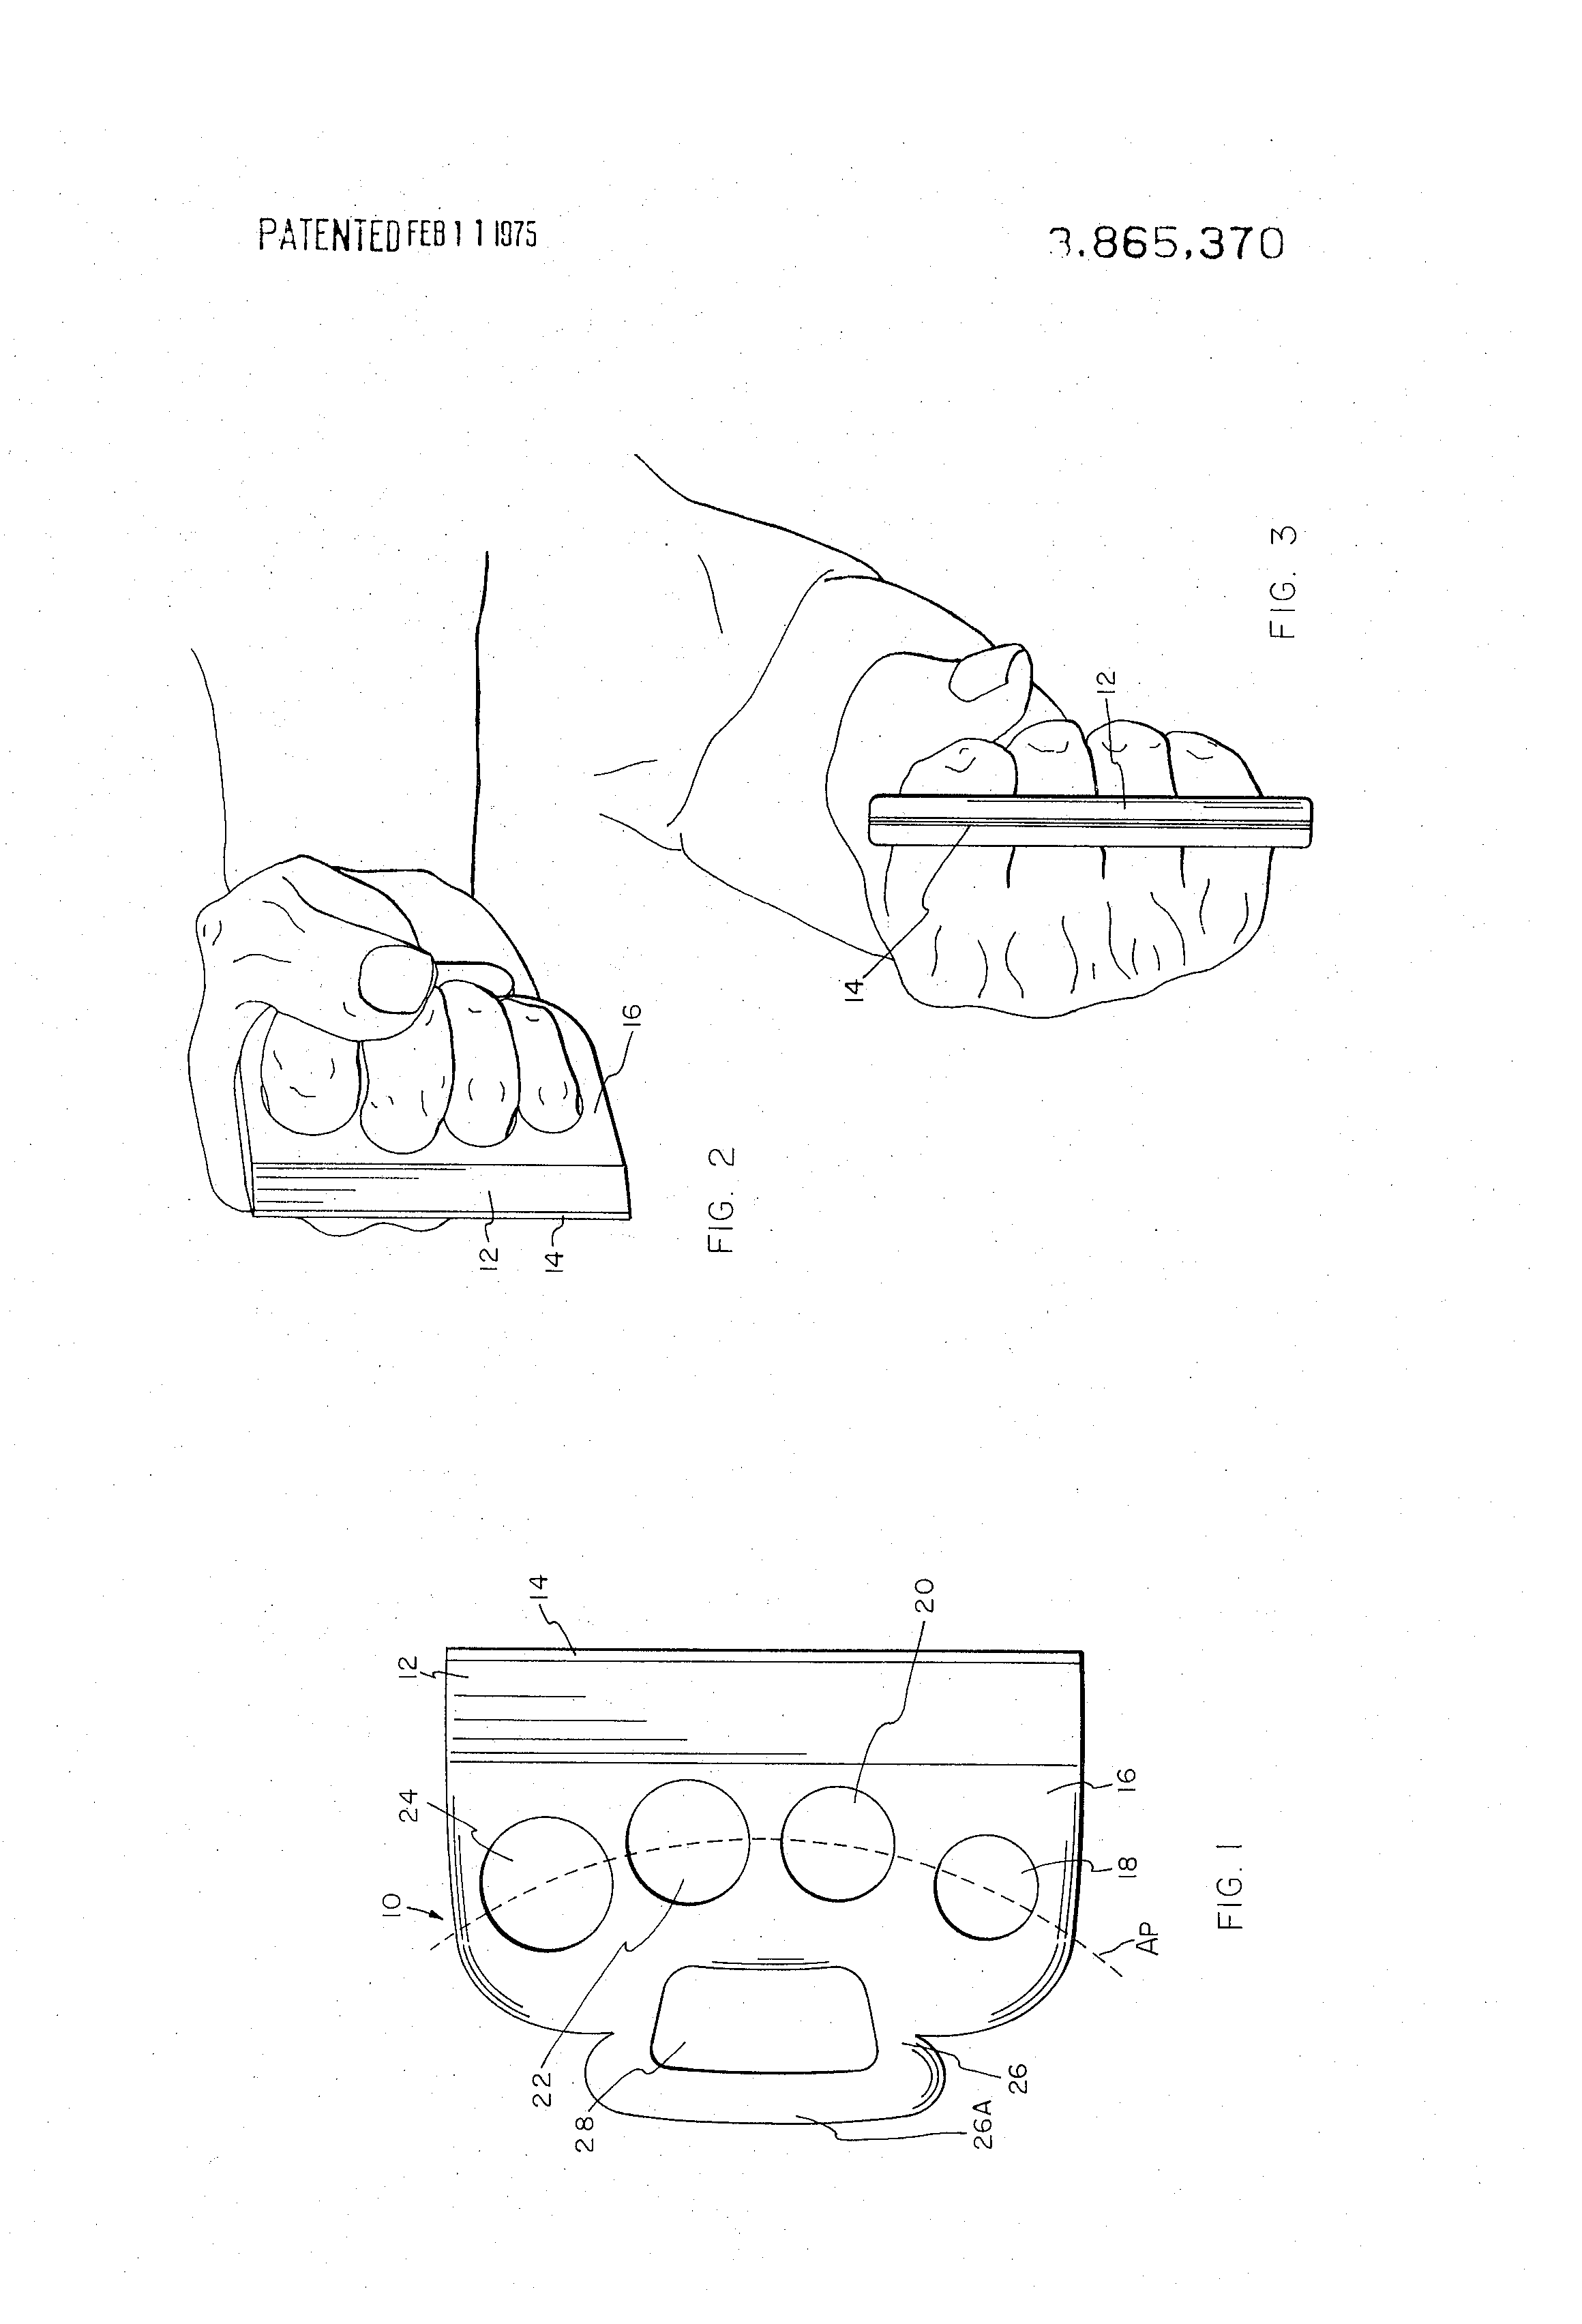 US3865370-1.png